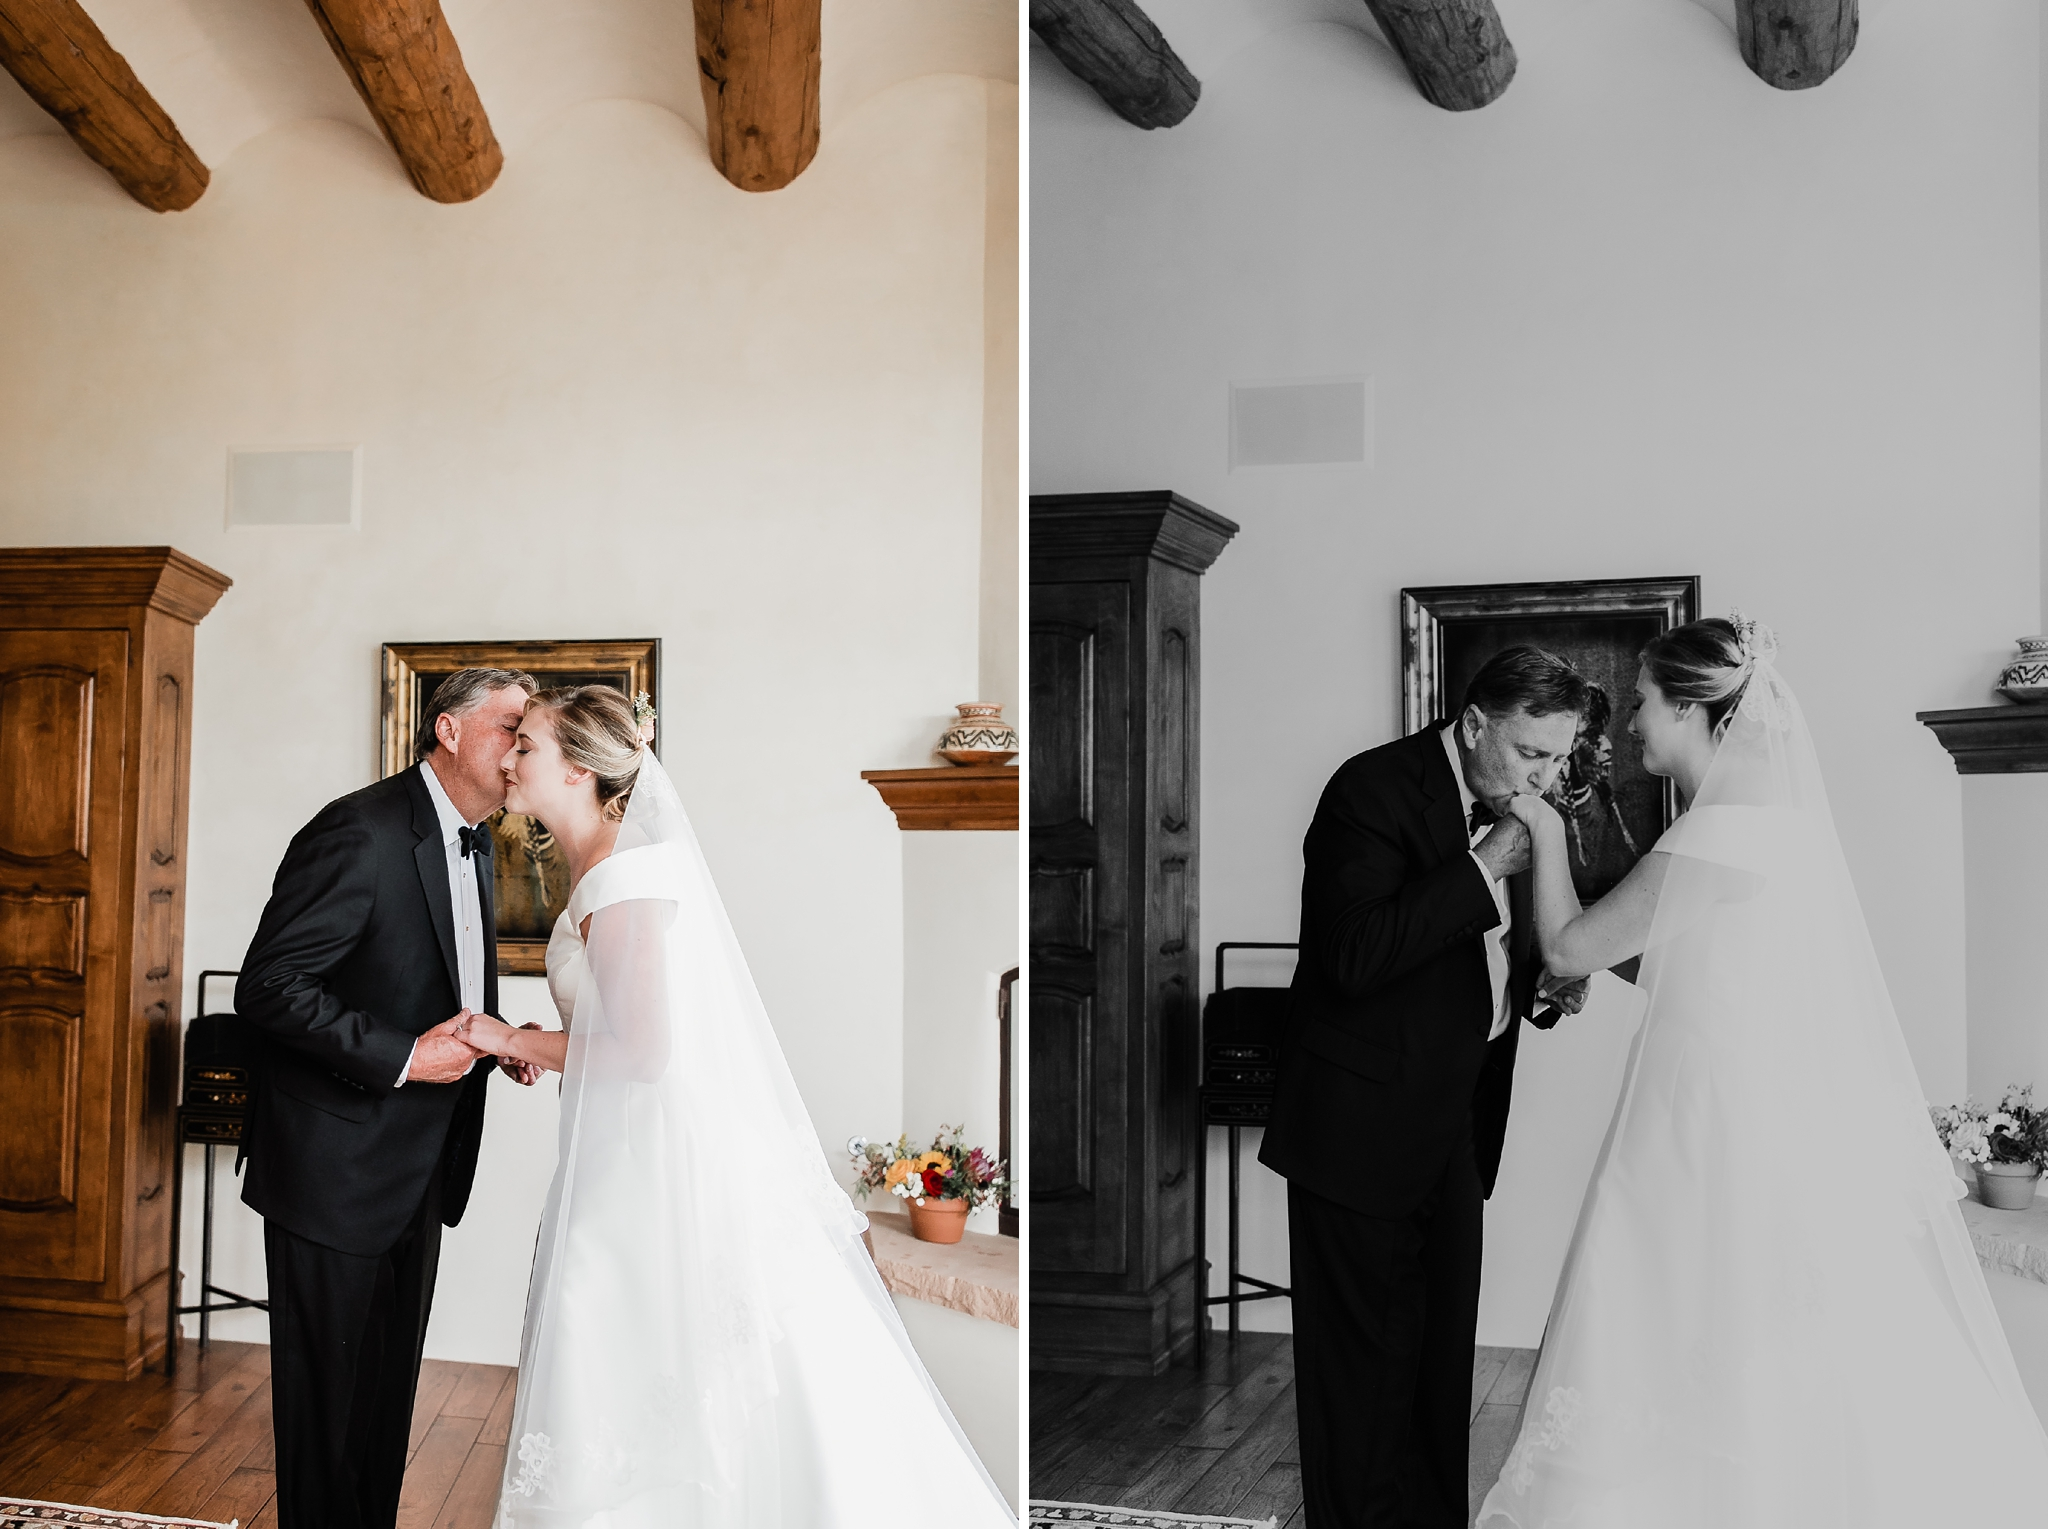 Alicia+lucia+photography+-+albuquerque+wedding+photographer+-+santa+fe+wedding+photography+-+new+mexico+wedding+photographer+-+new+mexico+wedding+-+las+campanas+wedding+-+santa+fe+wedding+-+maximalist+wedding+-+destination+wedding_0019.jpg